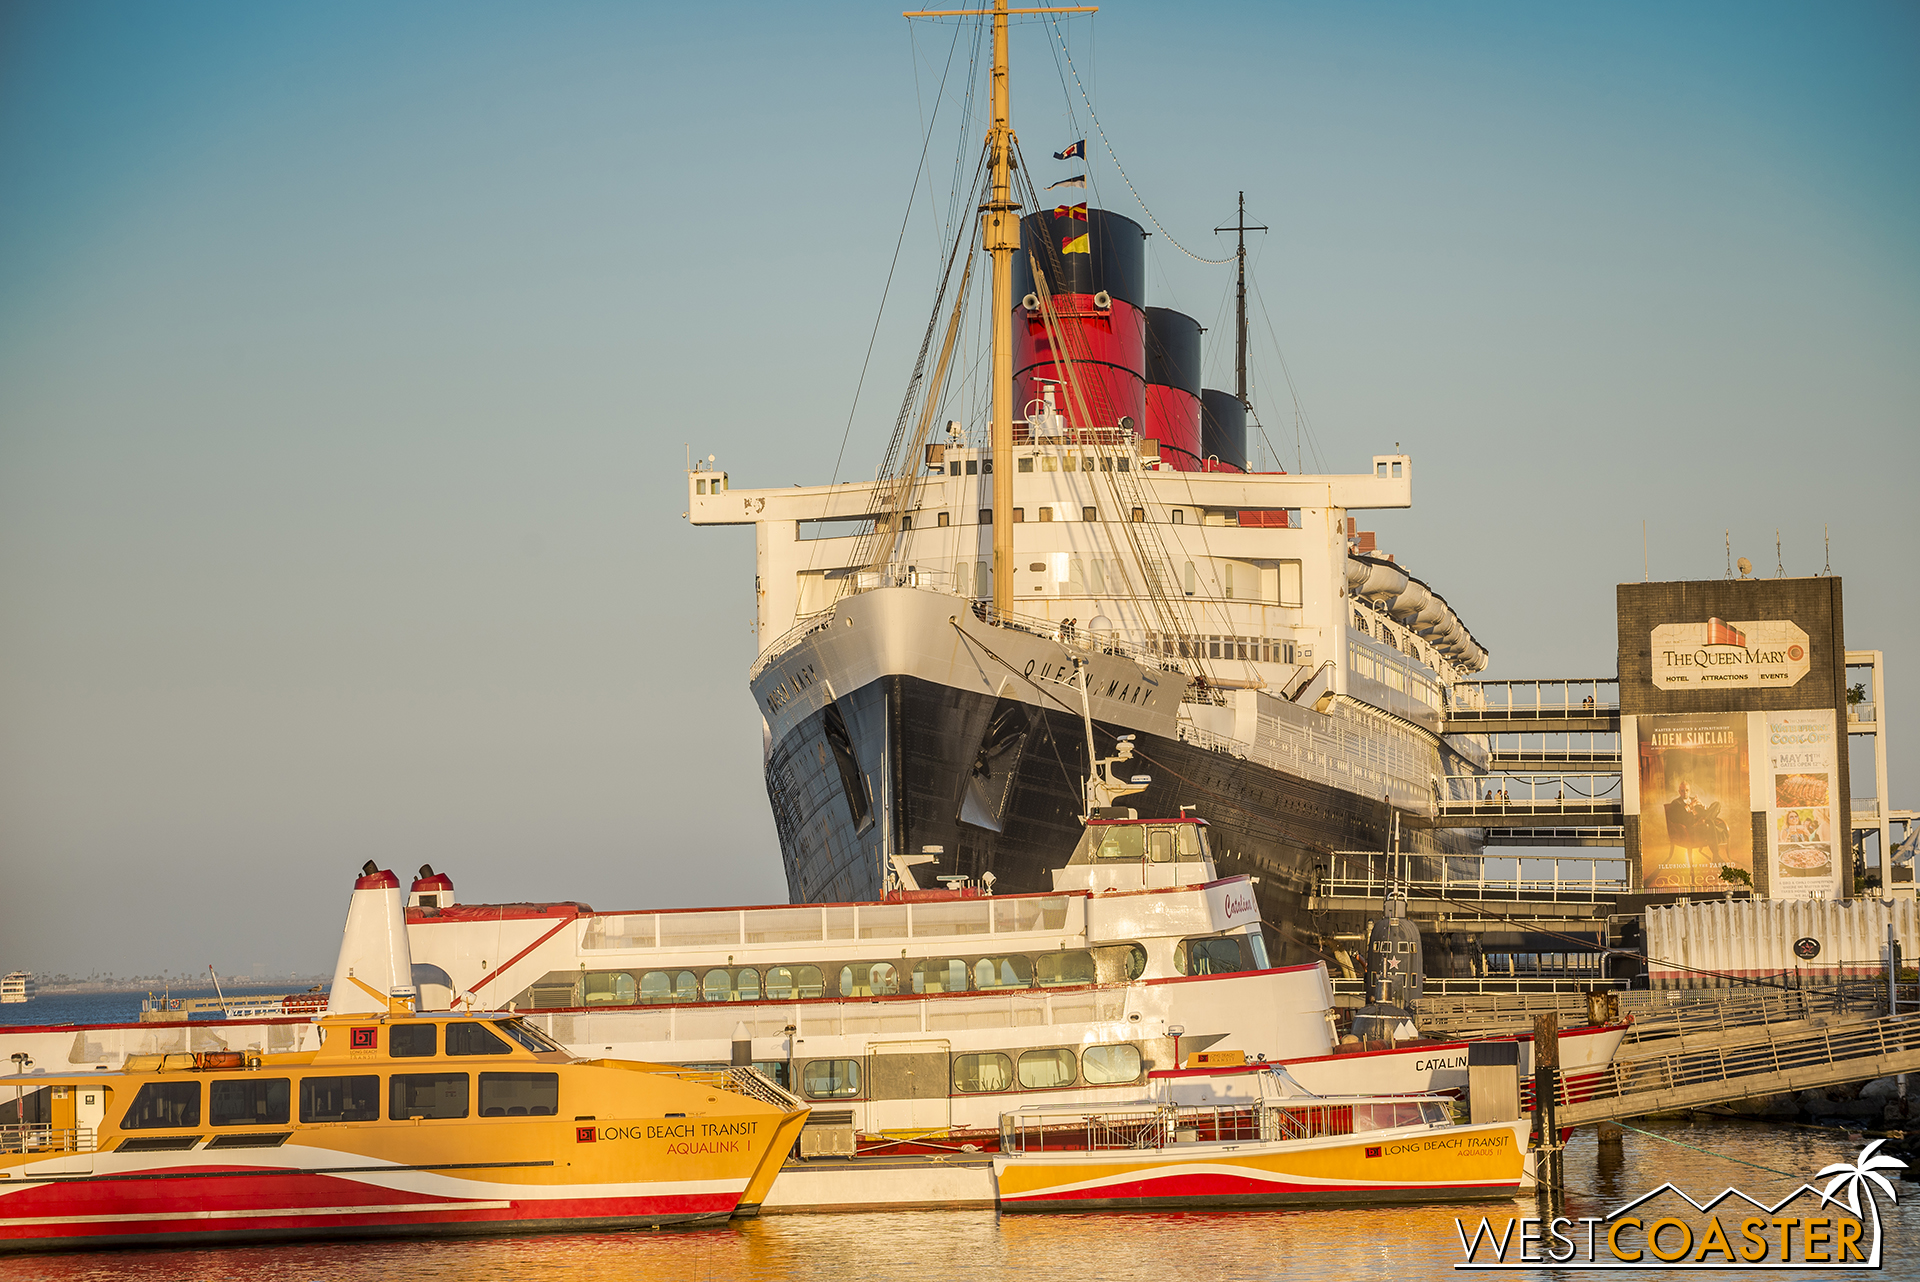 The Queen Mary, docked in Long Beach harbor.